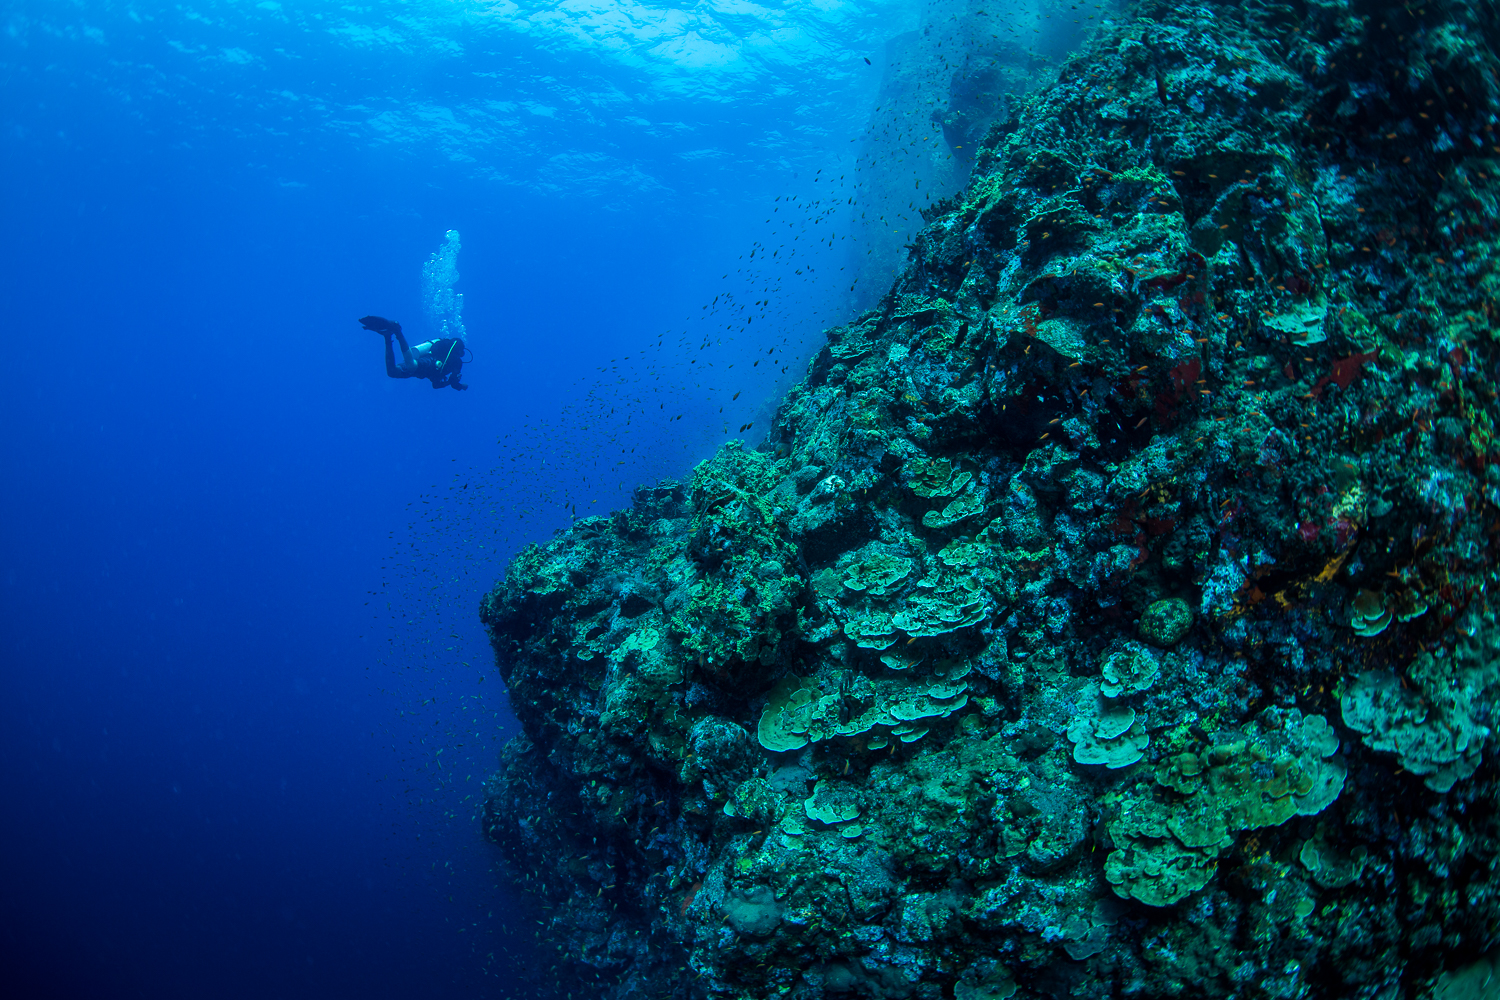 A diver hangs effortlessly off a steep wall at dive site Black Magic at Barren Island, Andaman Sea, India